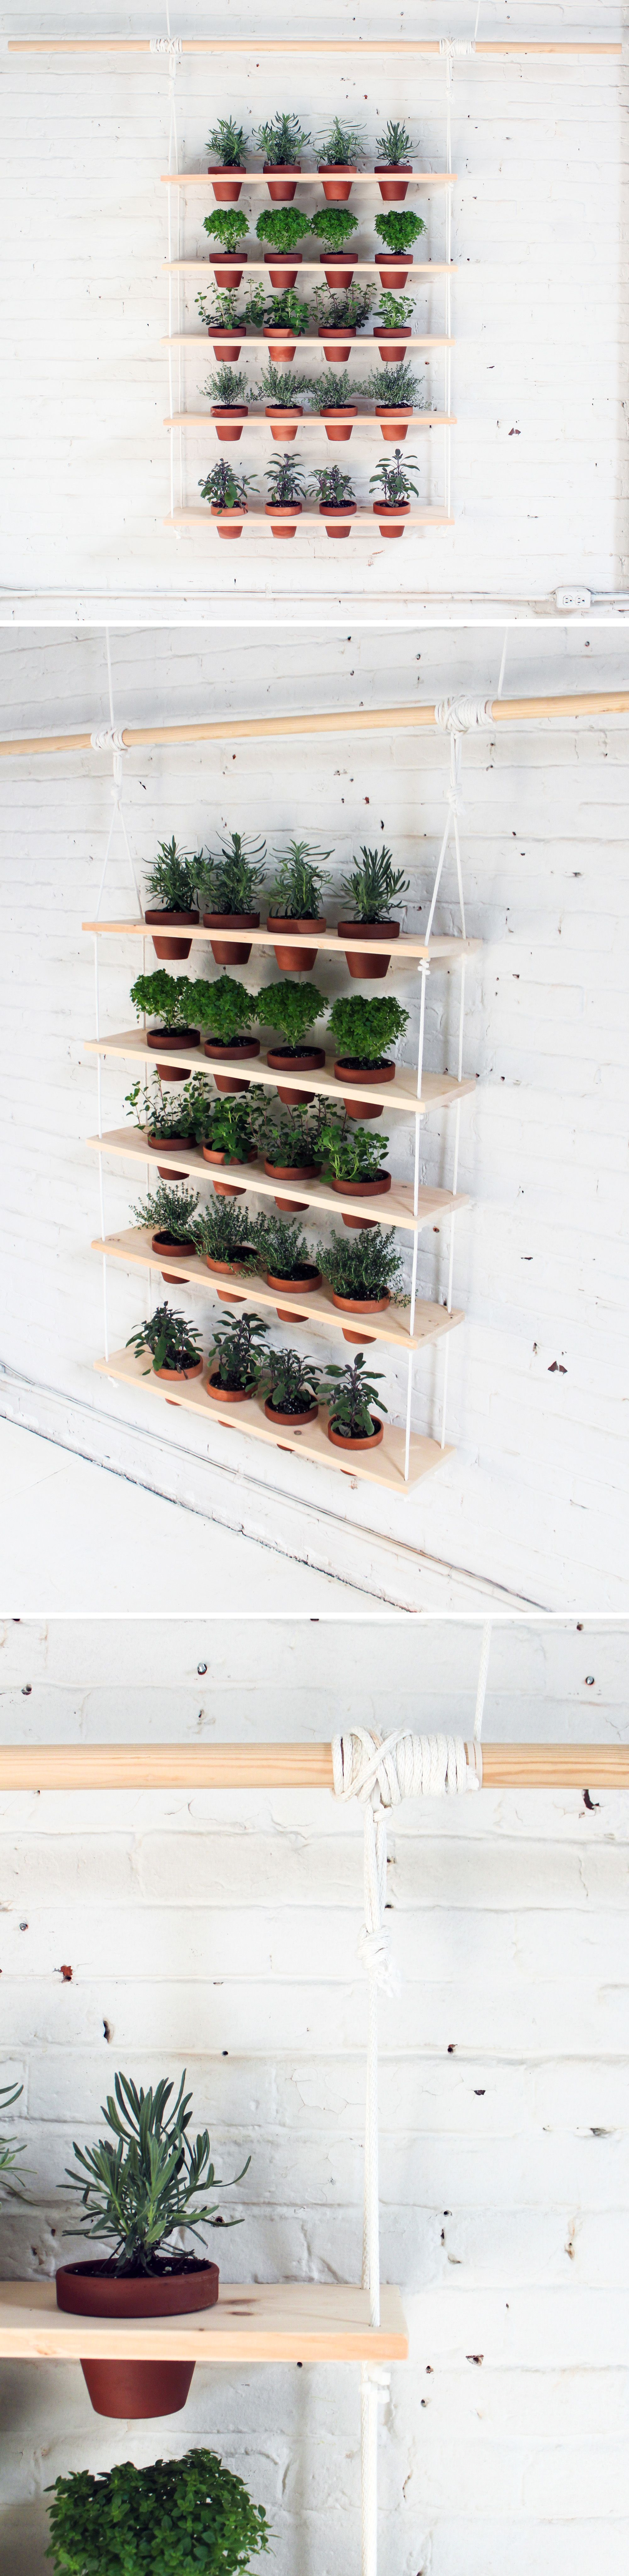 Hanging Herb Garden Ideas For Your Home   MORFLORA. Wall Herb Garden IndoorWindow  Herb GardensDiy ...